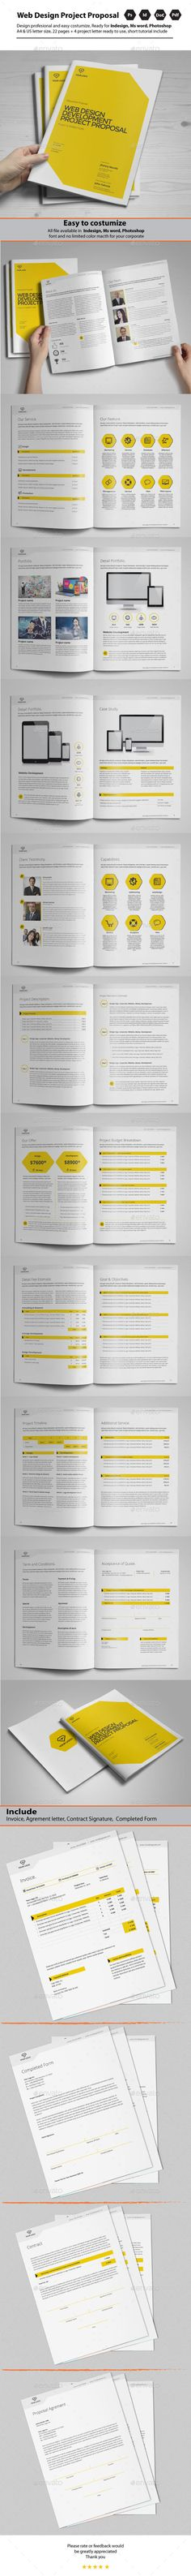 Indesign Business Proposal Template Template Pinterest - download business proposal template